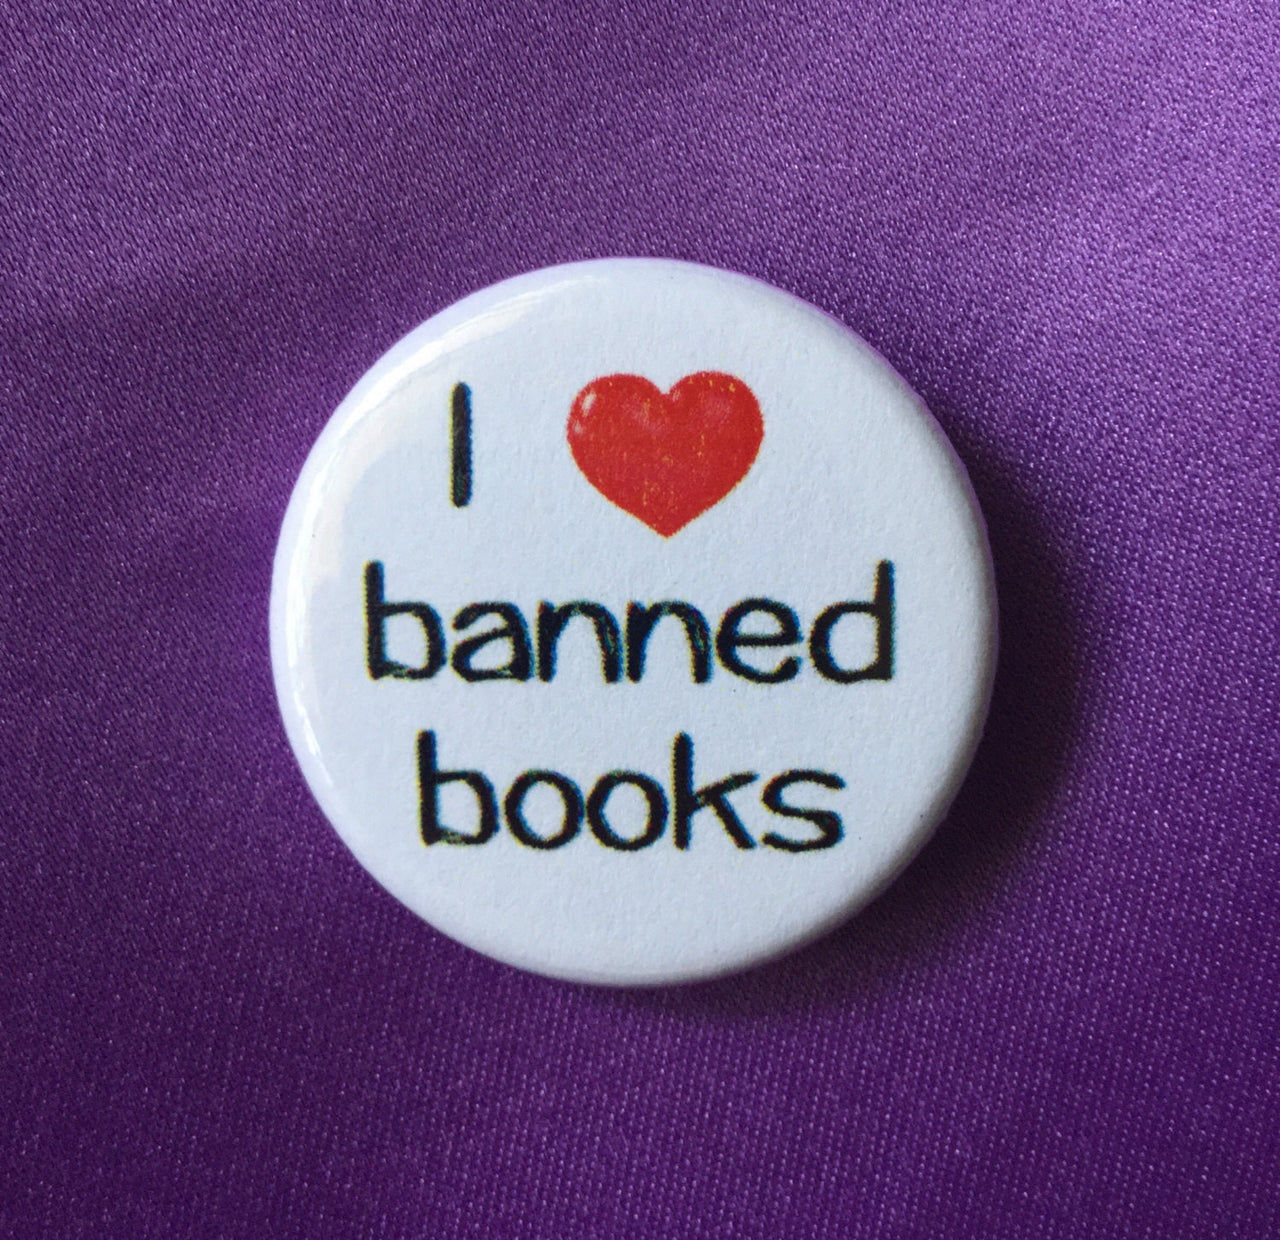 I love banned books - Radical Buttons